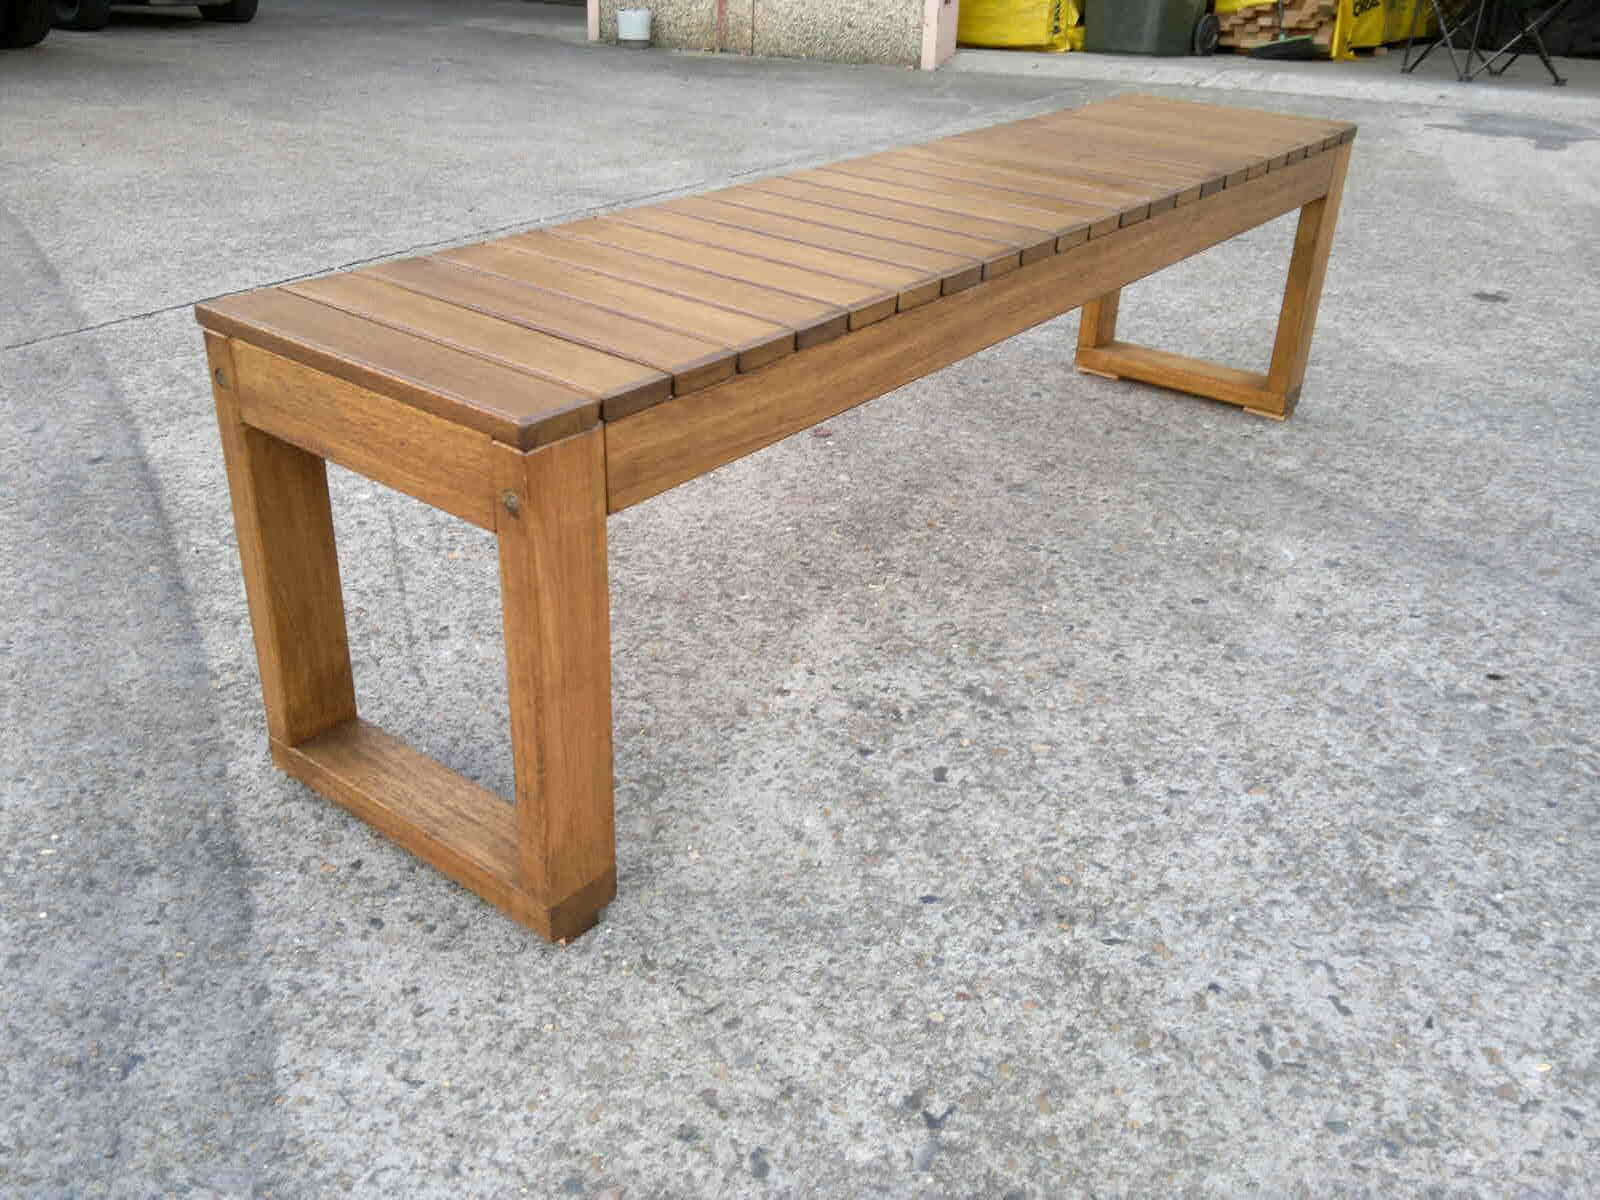 4 Person Bench Seat Benches Stools Outdoor Accessories